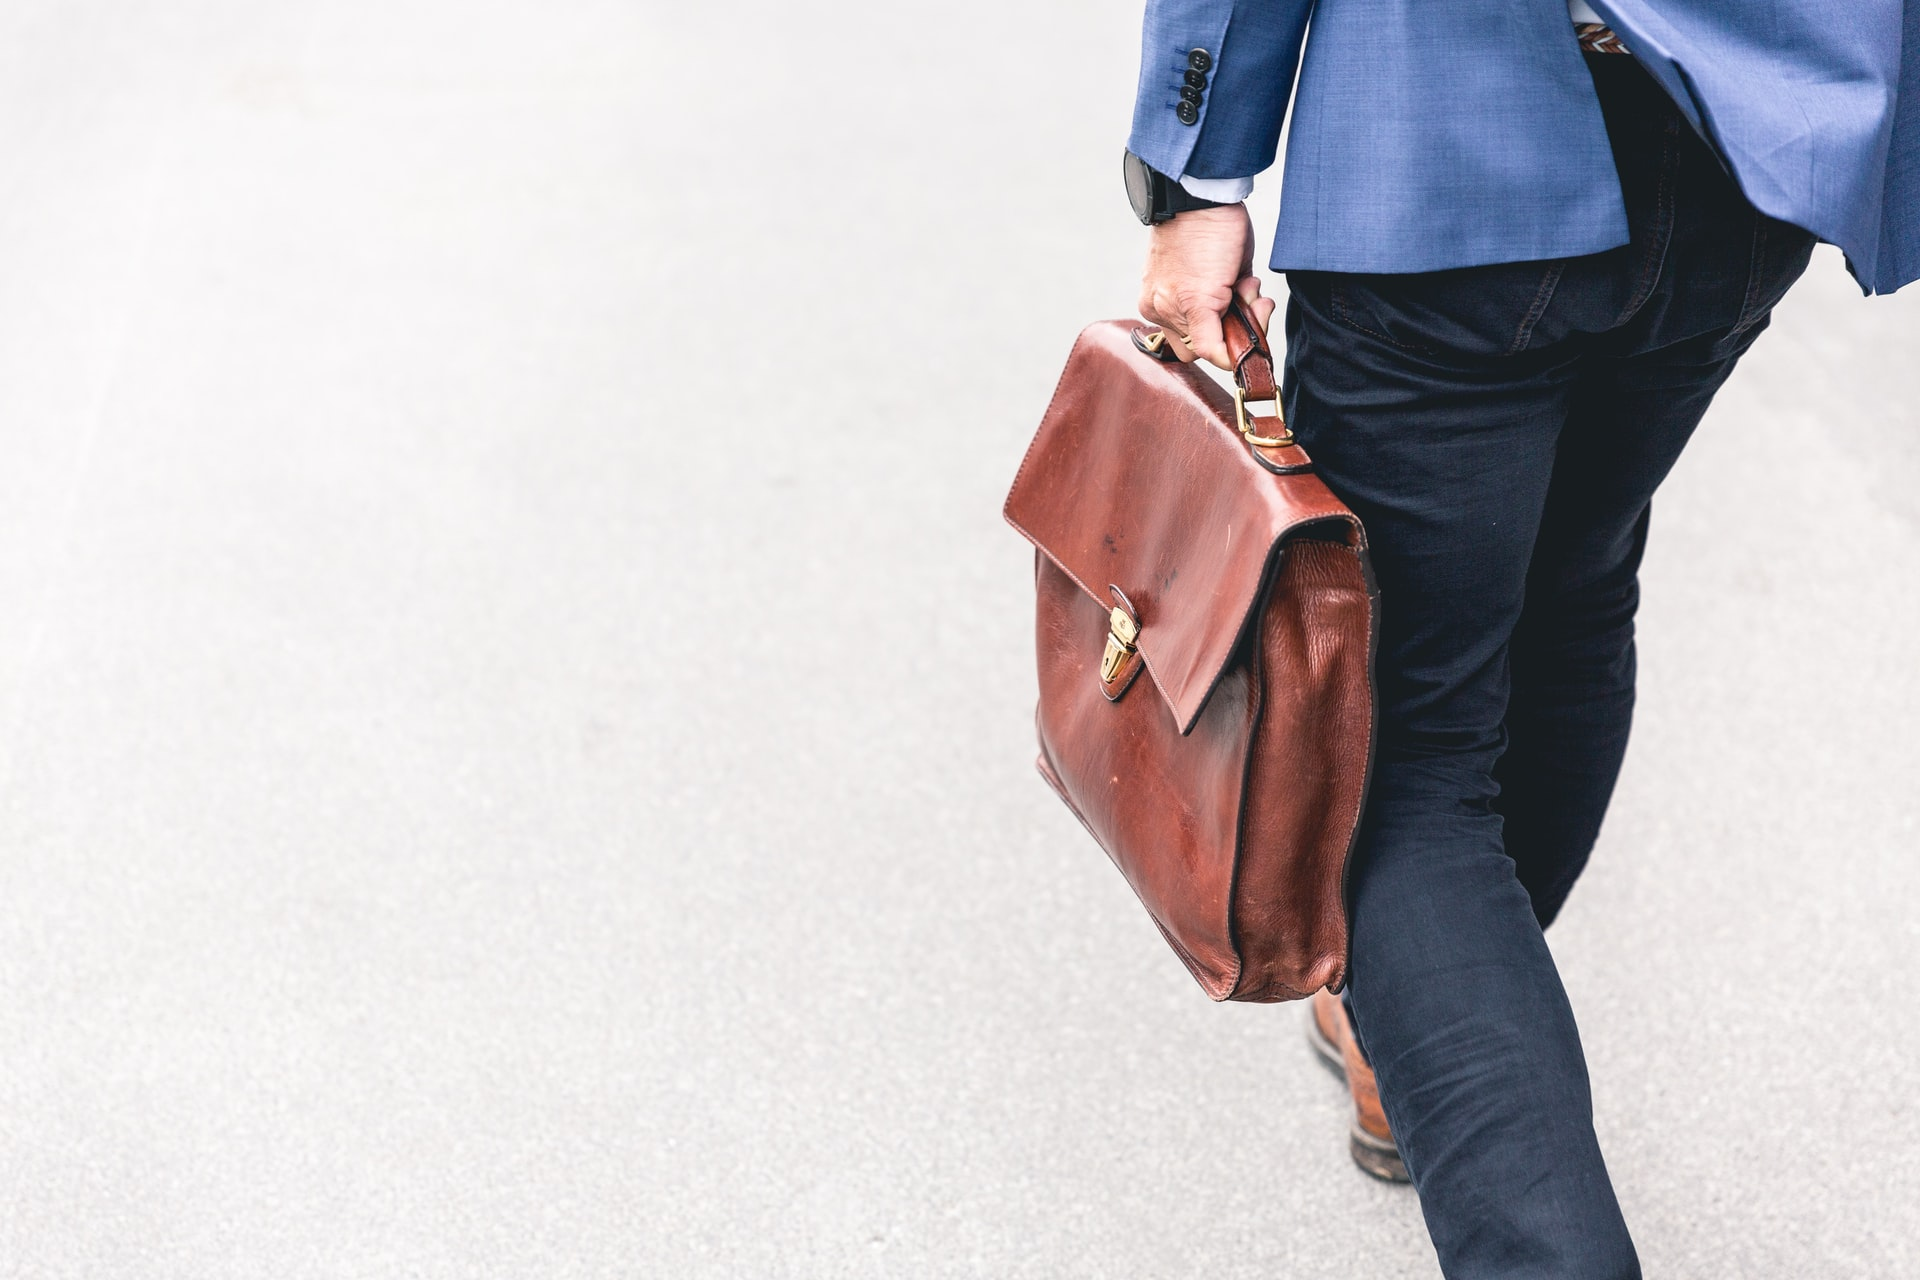 How to Run a Business Professionally